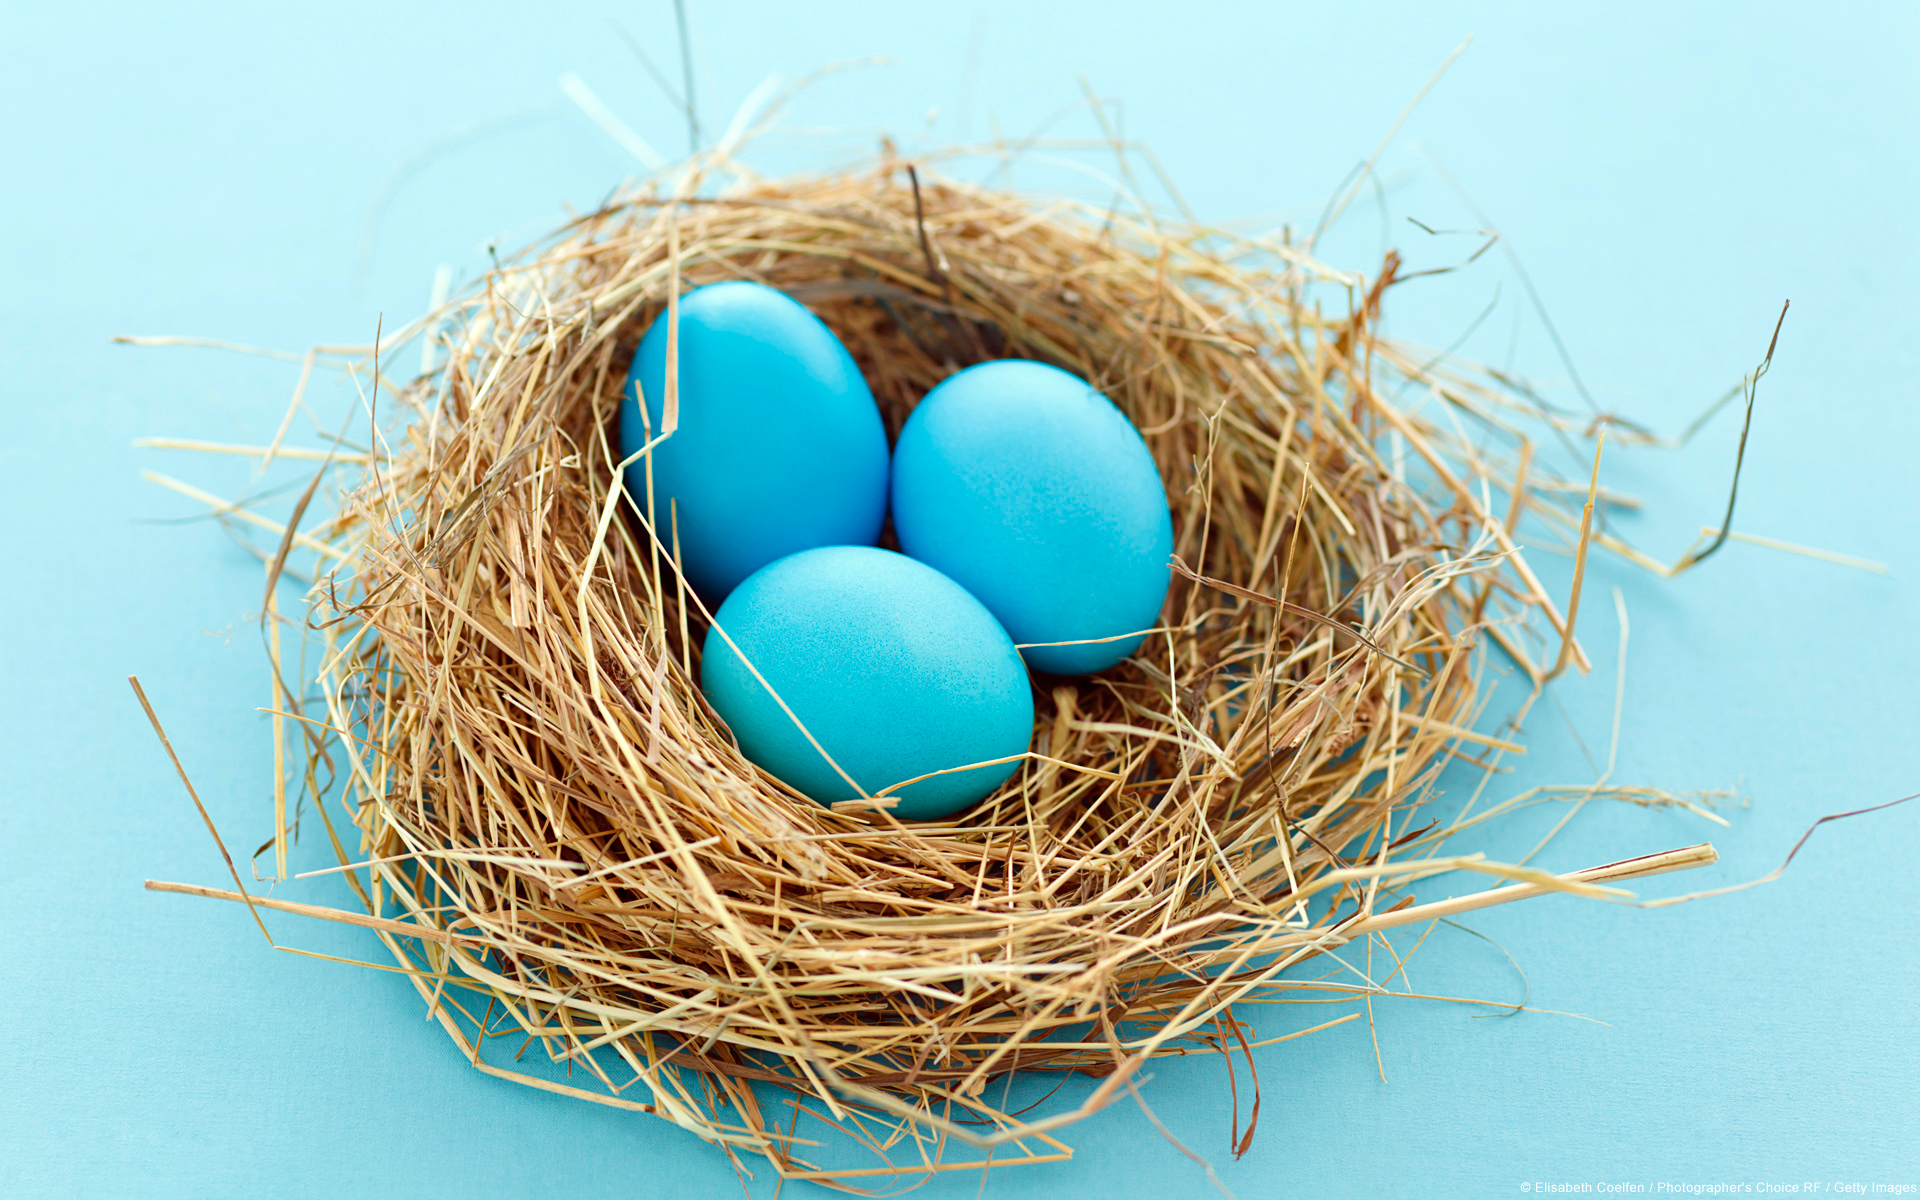 Painted eggs in a nest made of straw